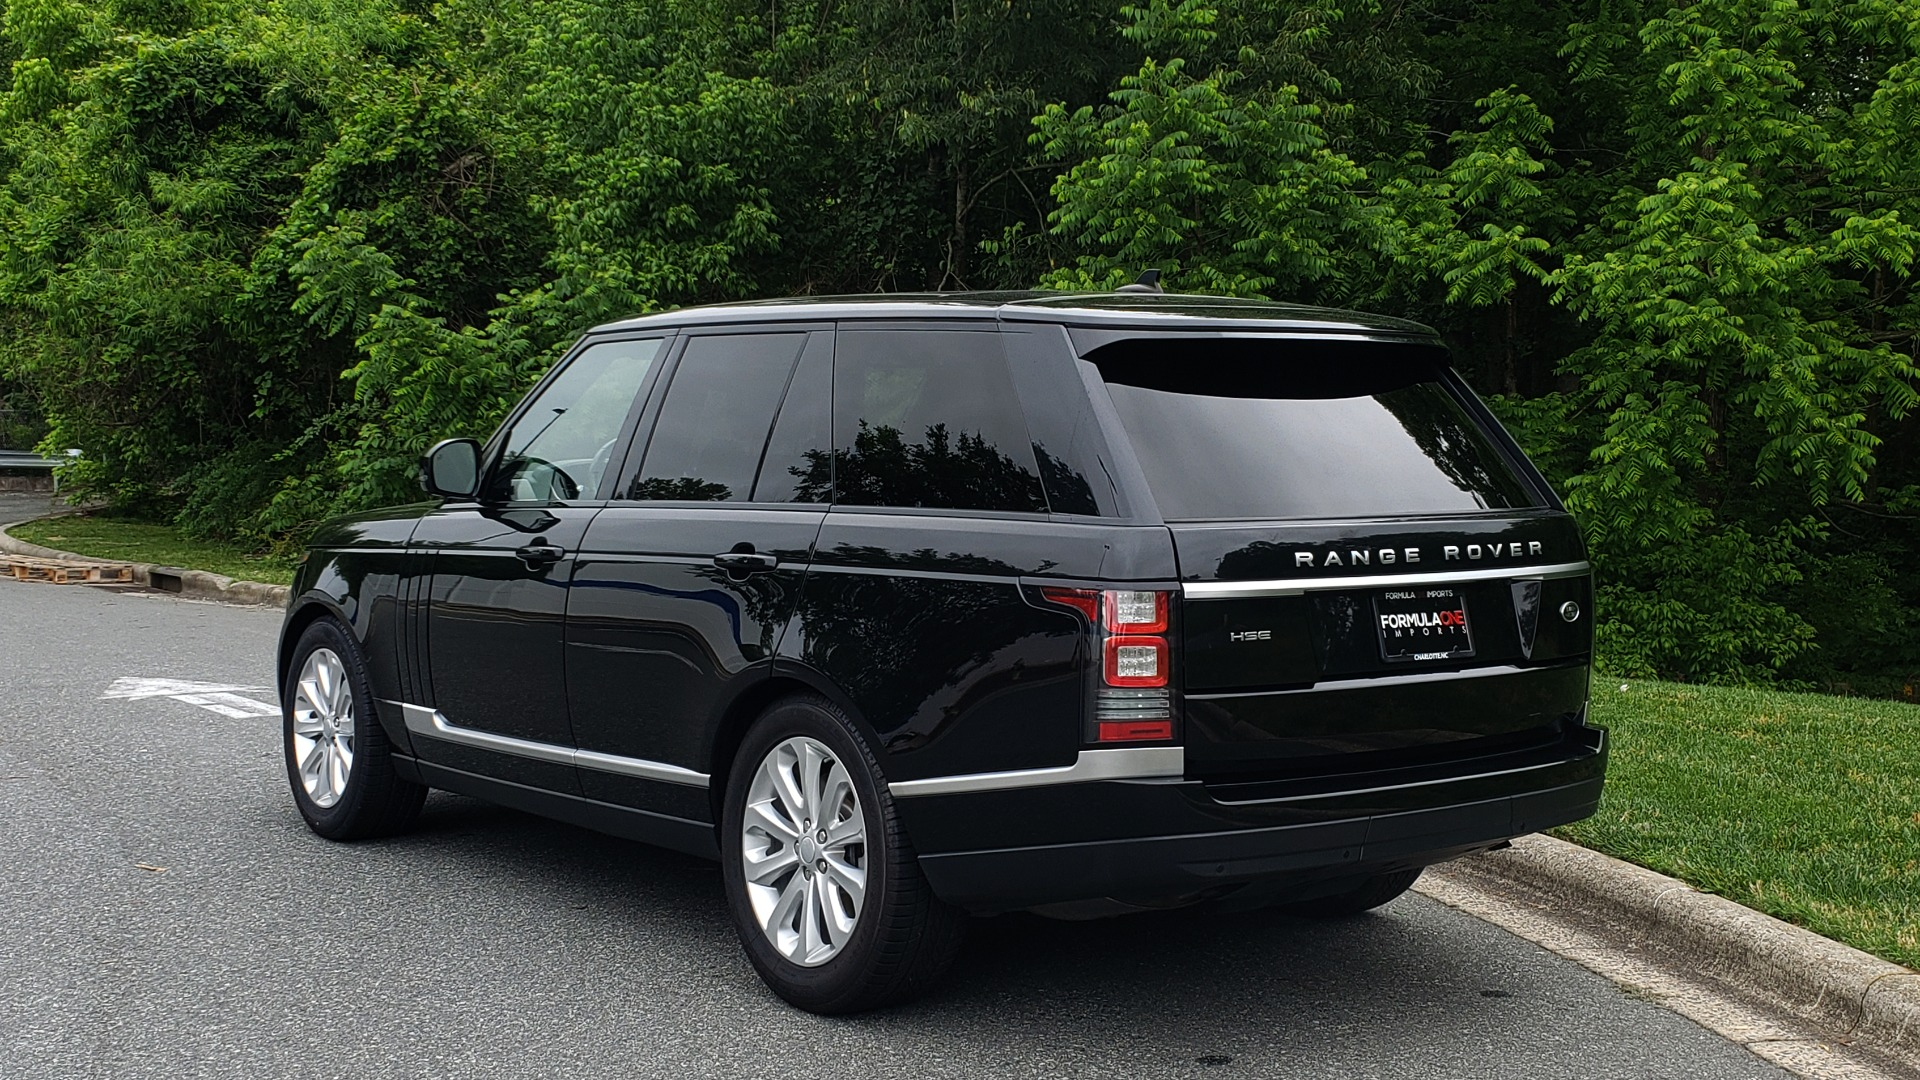 Used 2016 Land Rover Range Rover HSE 3.0L SC V6 / NAV / PANO-ROOF / VENT SEATS / REARVIEW / BLIND SPOT for sale Sold at Formula Imports in Charlotte NC 28227 3